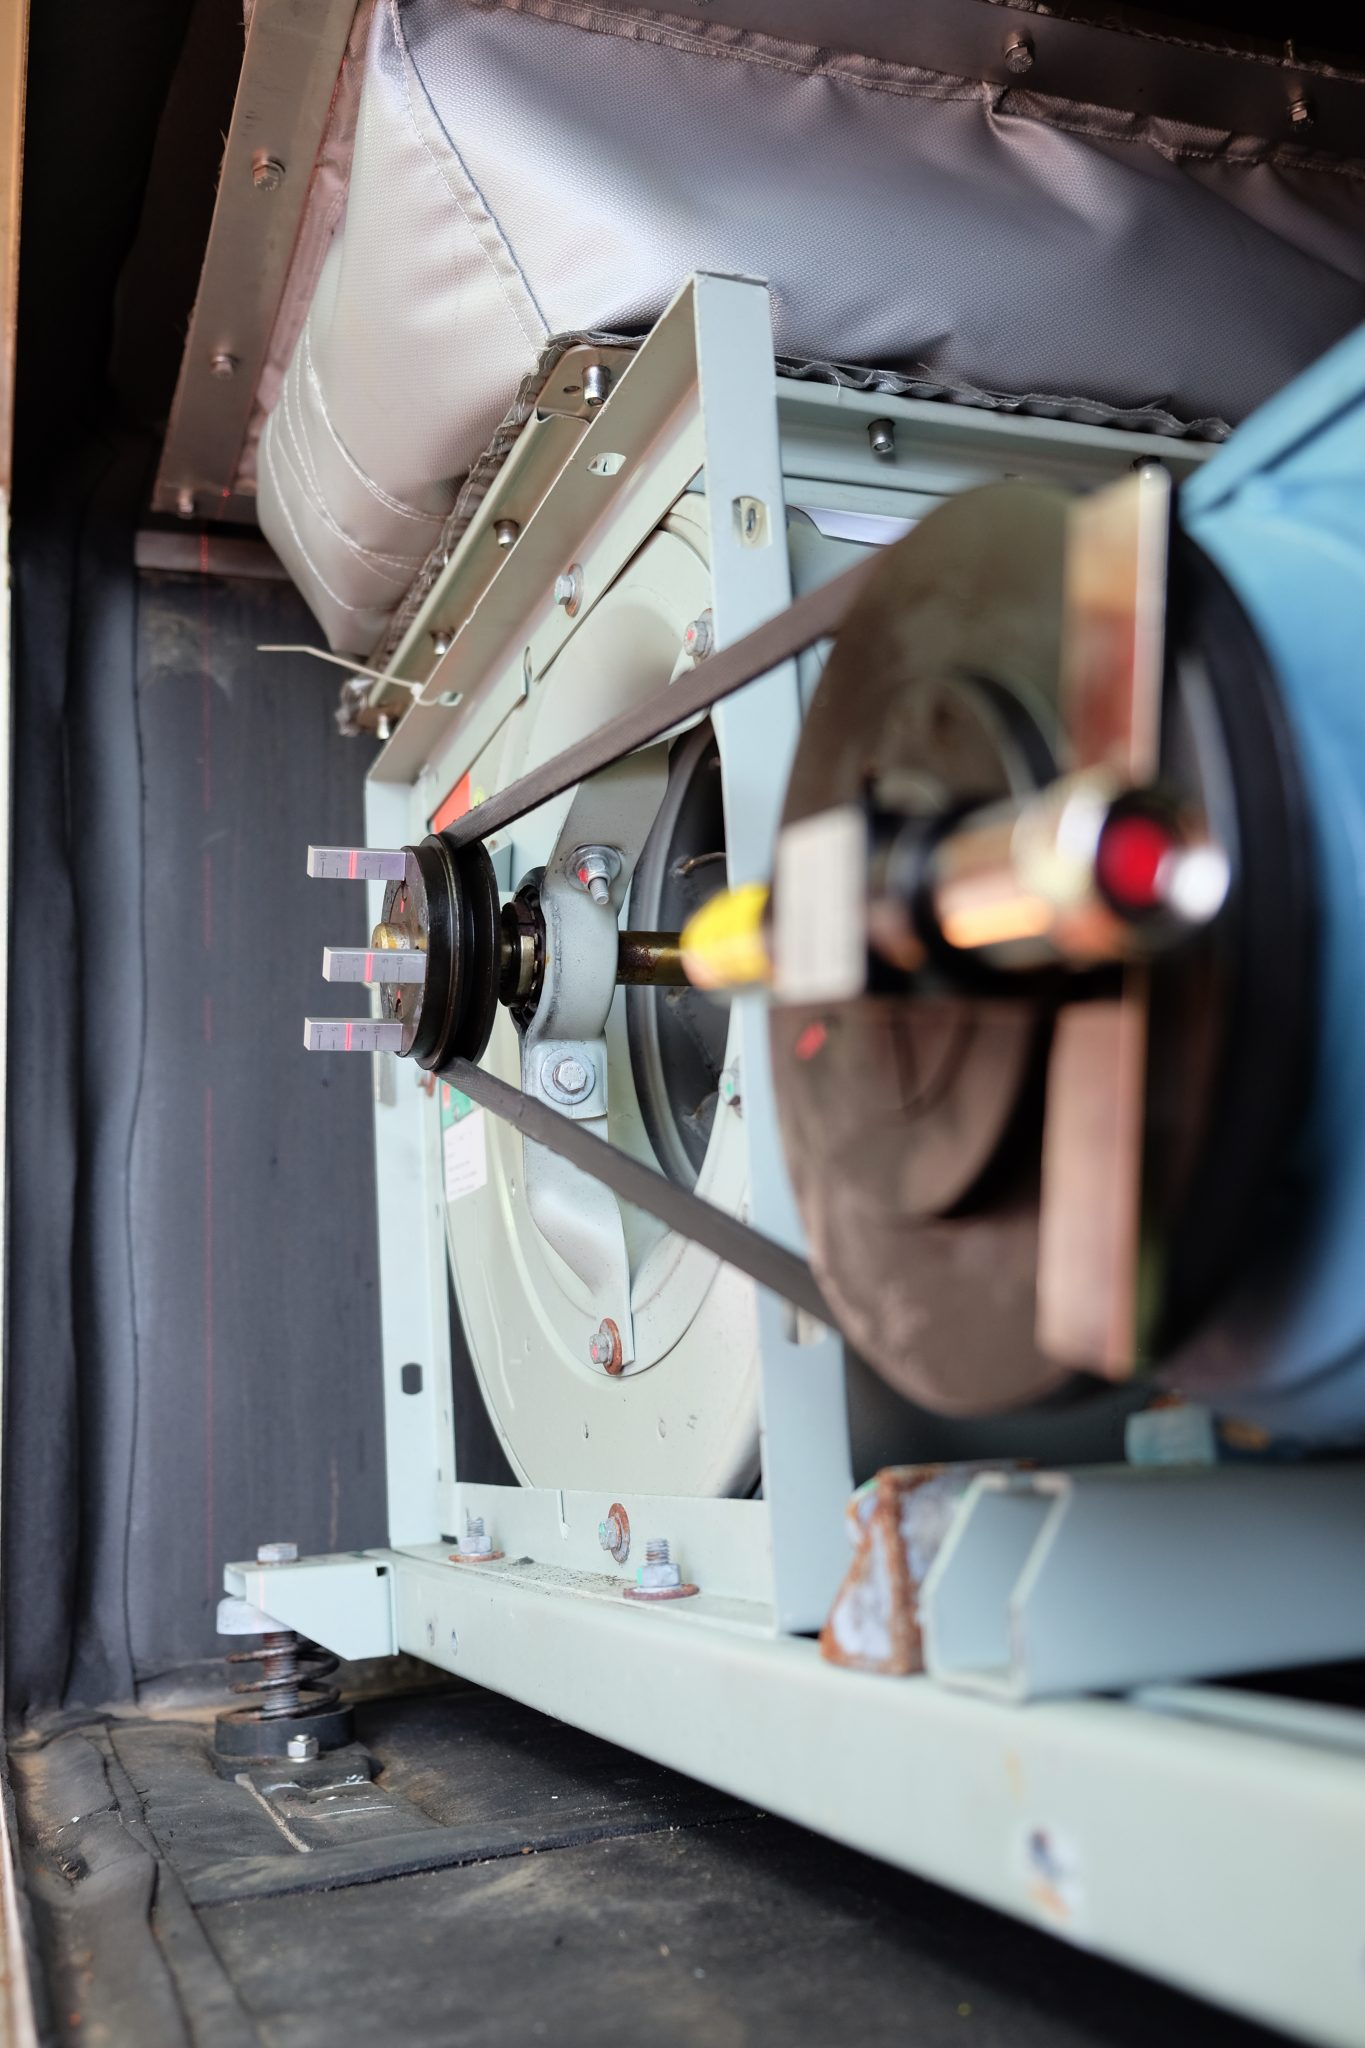 V-belt alignment